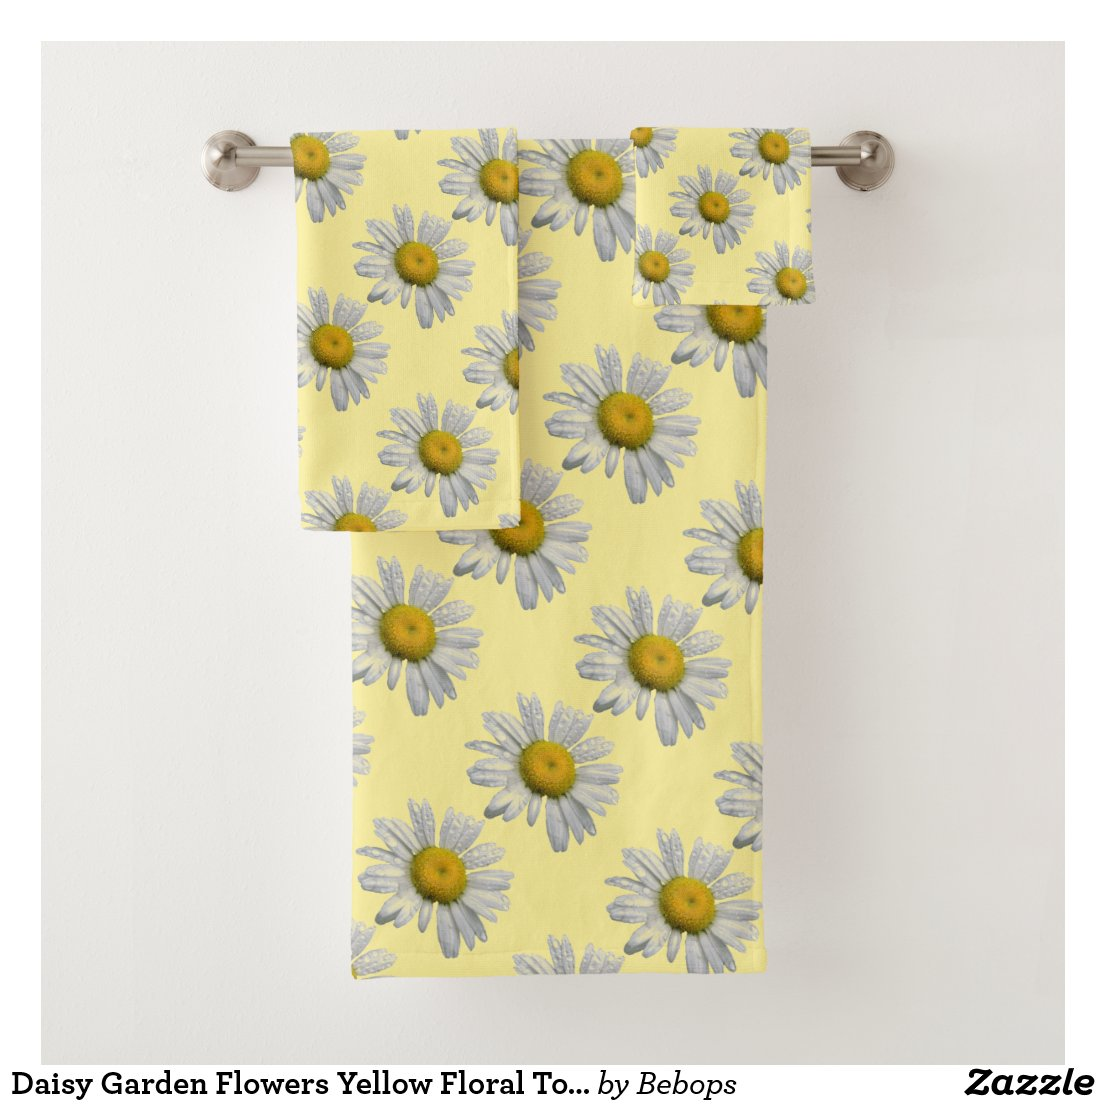 Daisy Garden Flowers Yellow Floral Towel Set